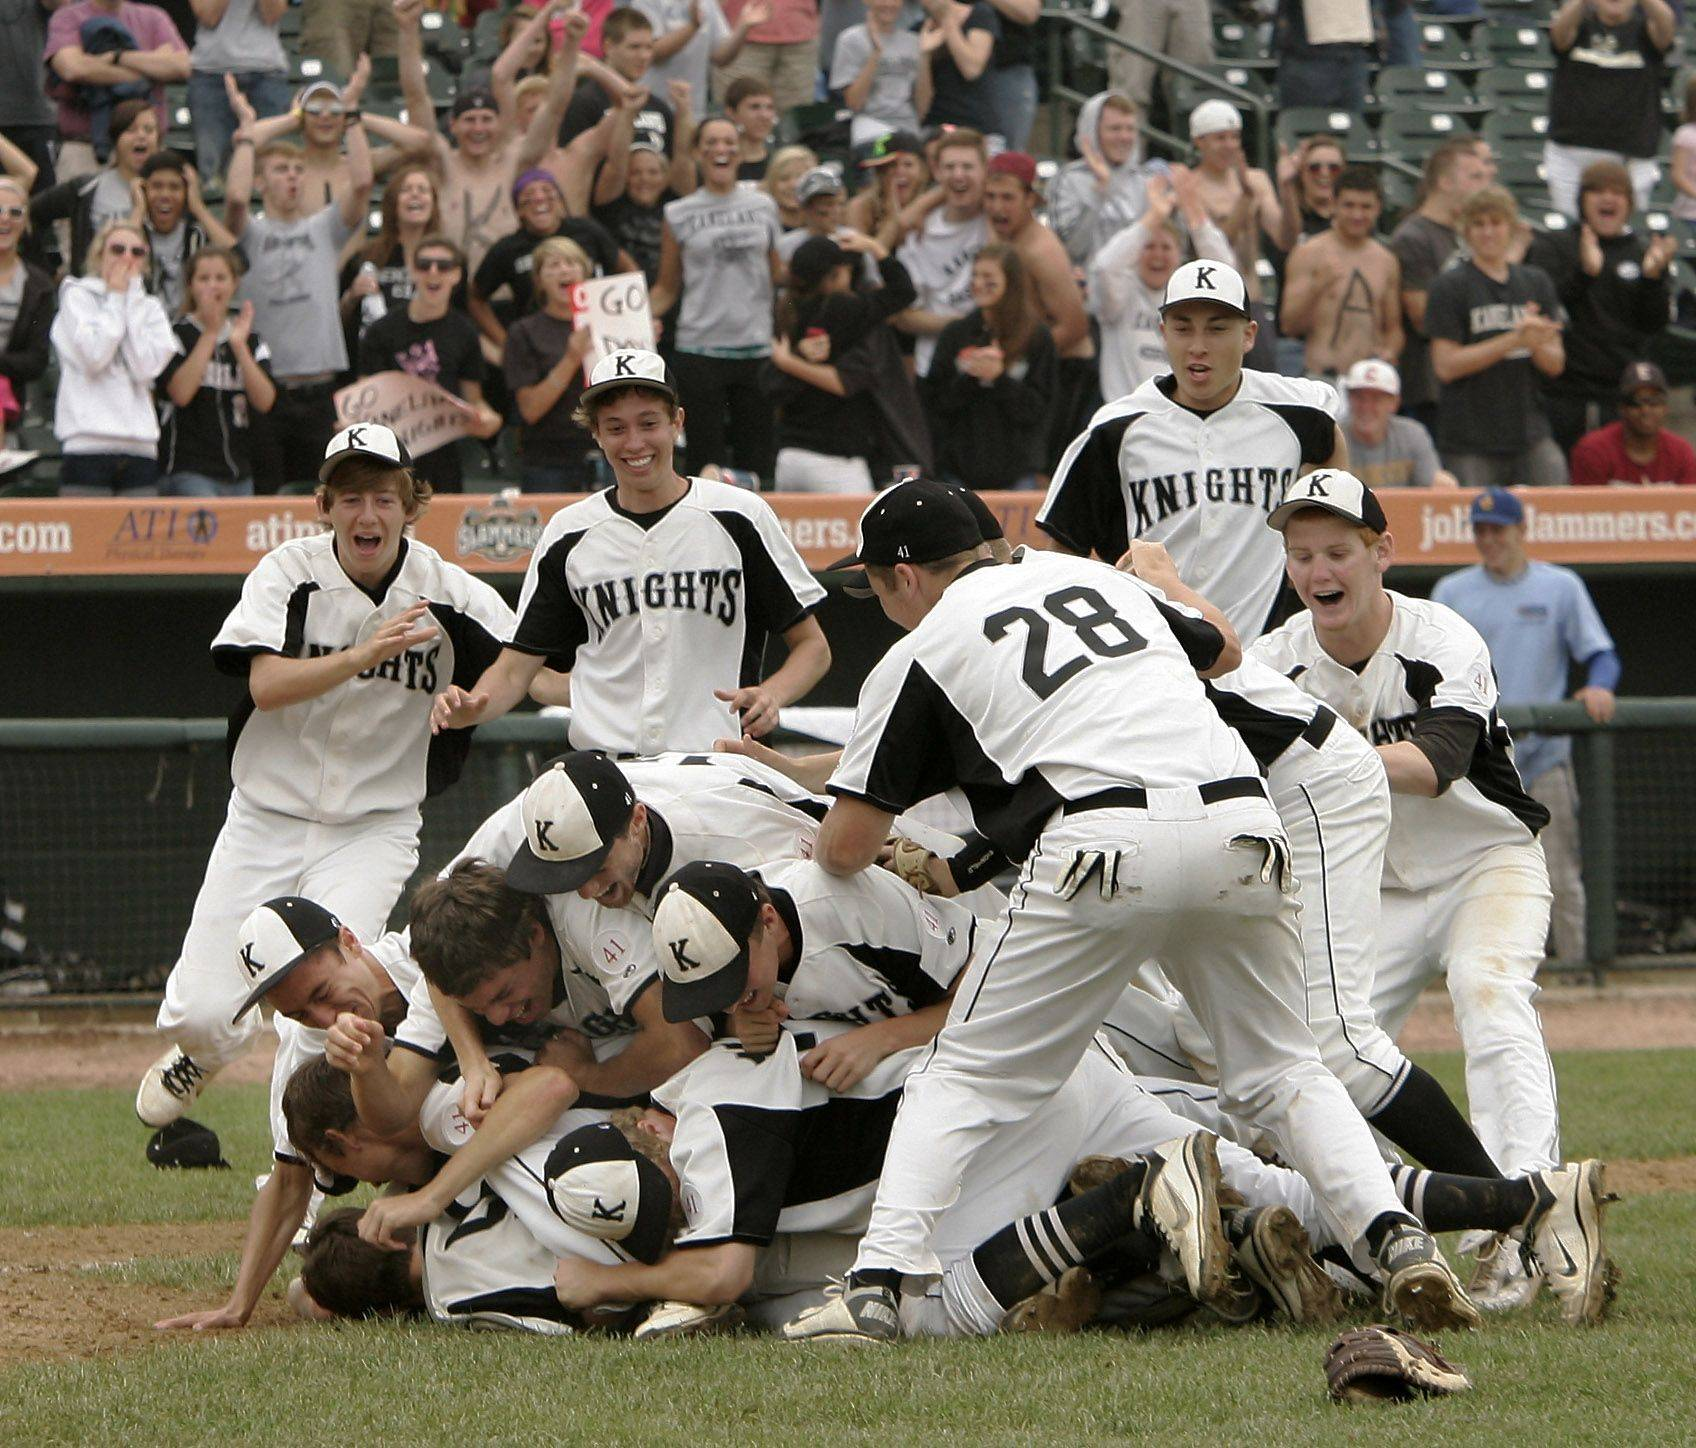 Kaneland players rush to the field after defeating Oak Forest for the state championship during the boys high school baseball game Saturday in the Class 3A state finals at Silver Cross Field in Joliet. Kaneland defeated Oak Forest 11-3.